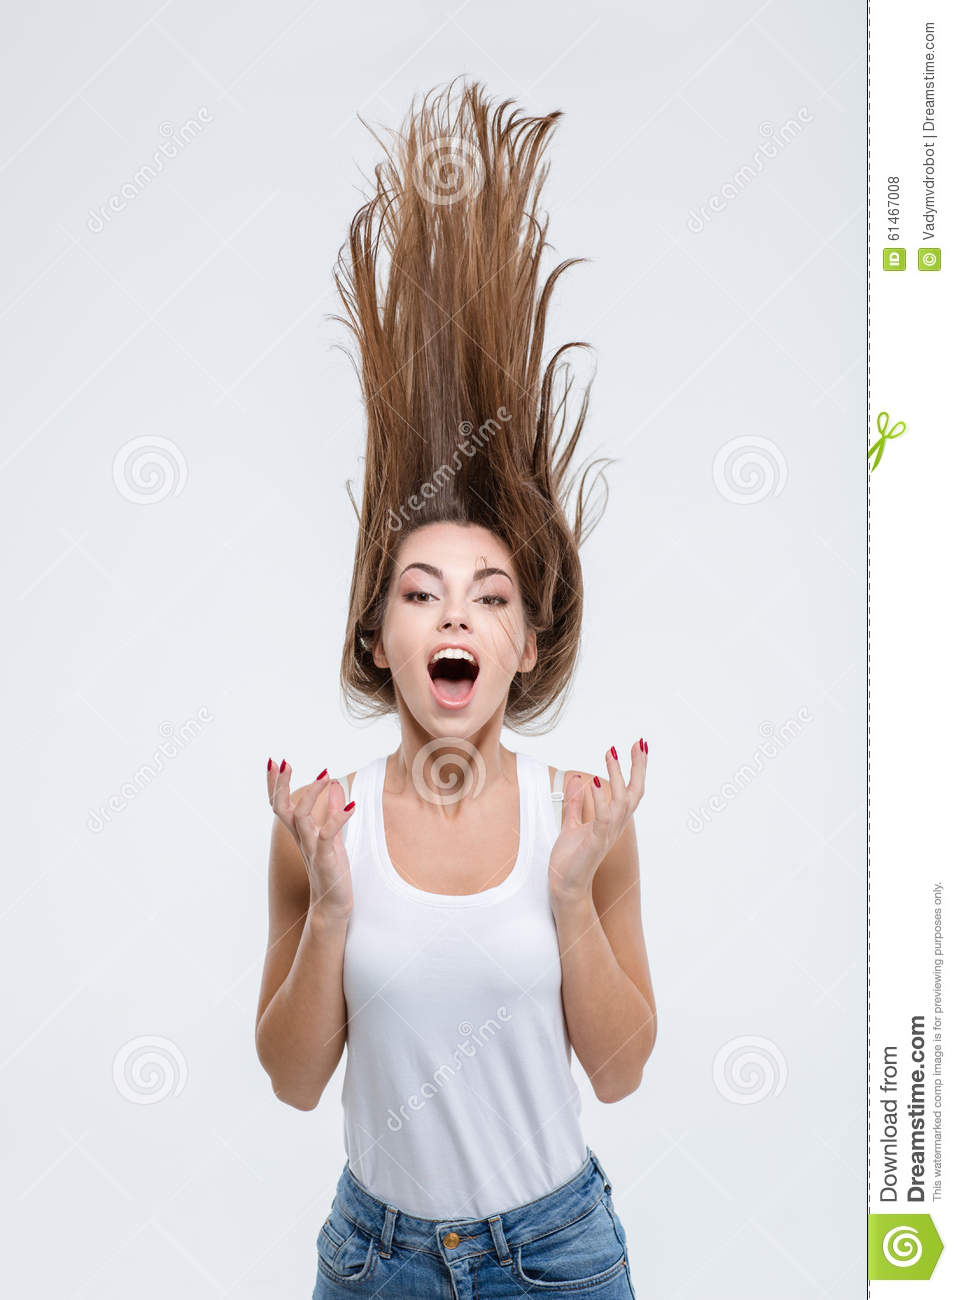 Crazy Woman With Hair Up Into Air Stock Photo Image